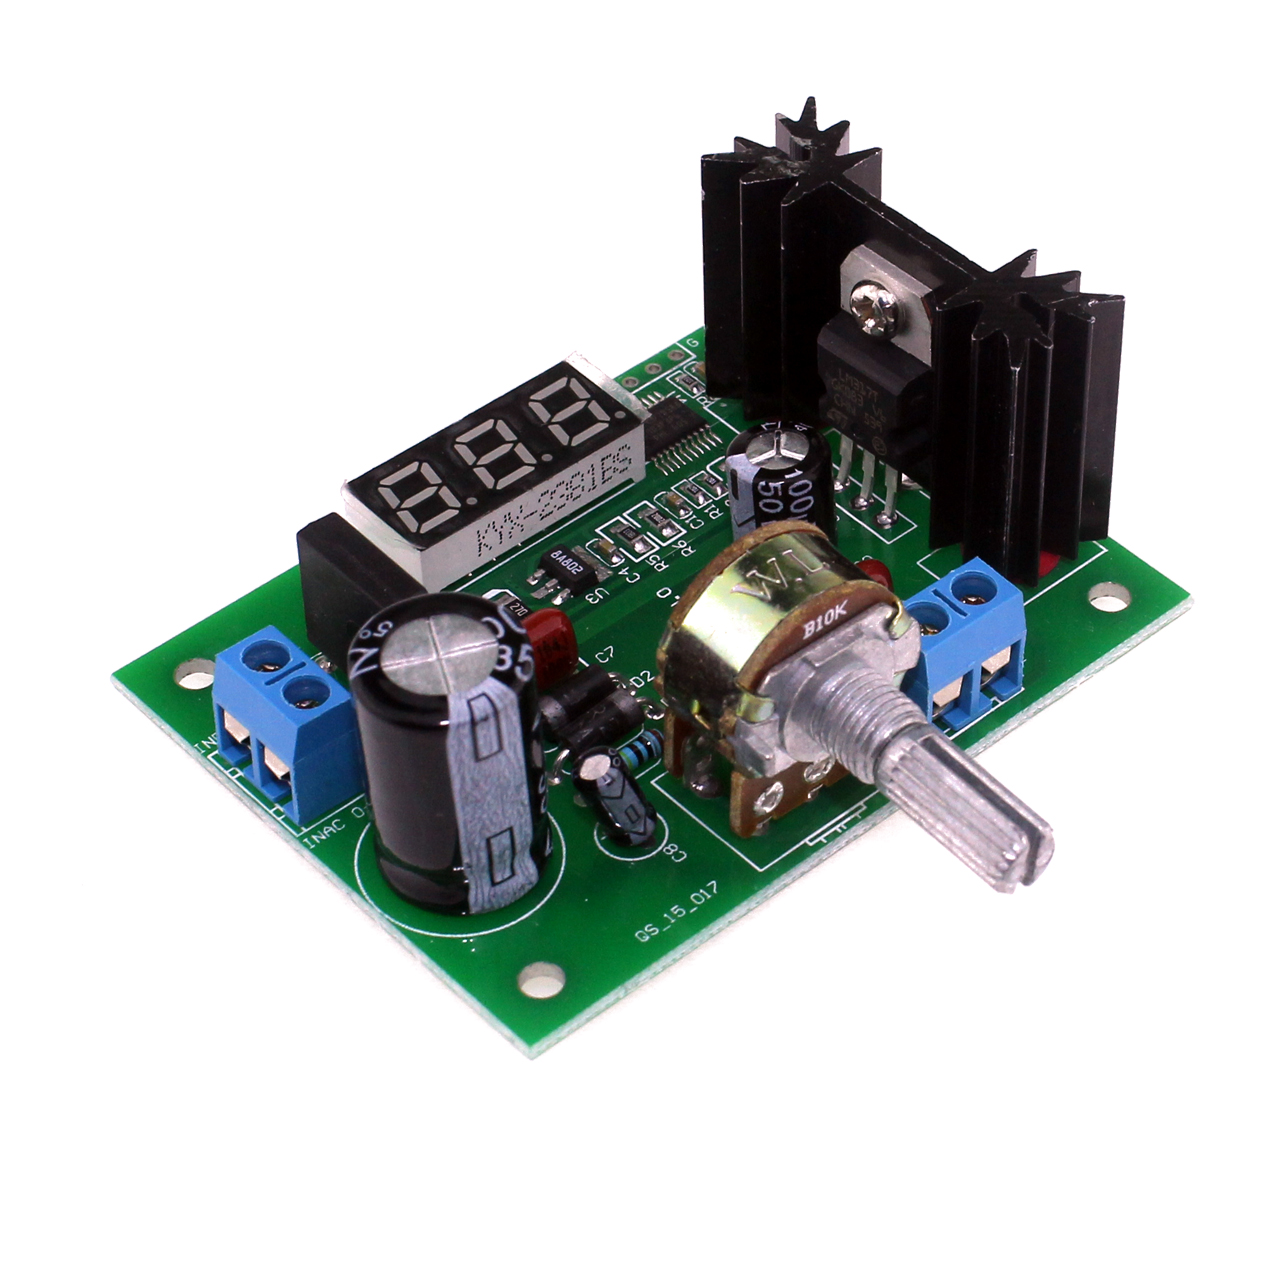 LM317 AC/DC Continuously Adjustable Voltage Regulator Step-down Power Supply Module with LED Display 1.25V-28V DCLM317 AC/DC Continuously Adjustable Voltage Regulator Step-down Power Supply Module with LED Display 1.25V-28V DC